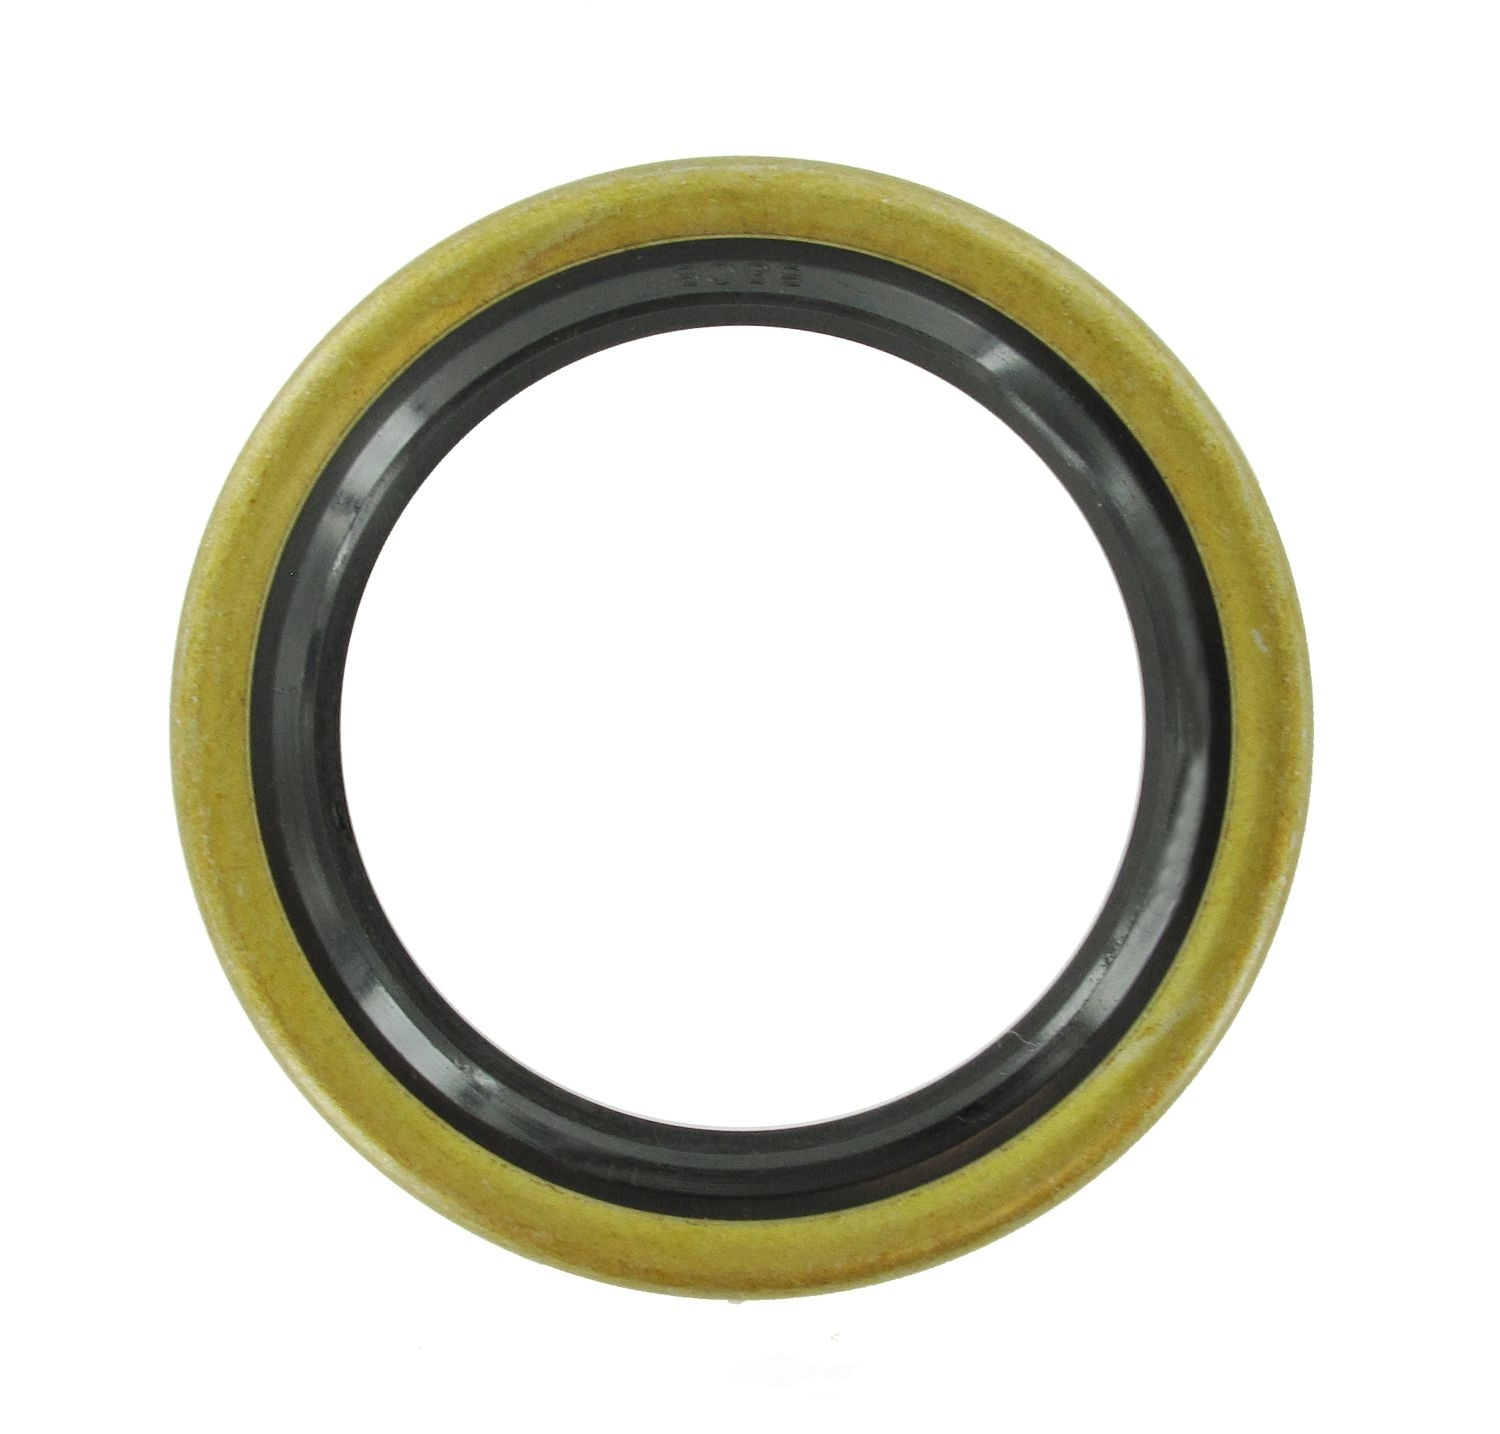 SKF (CHICAGO RAWHIDE) - Manual Trans Shift Shaft Seal - SKF 15807